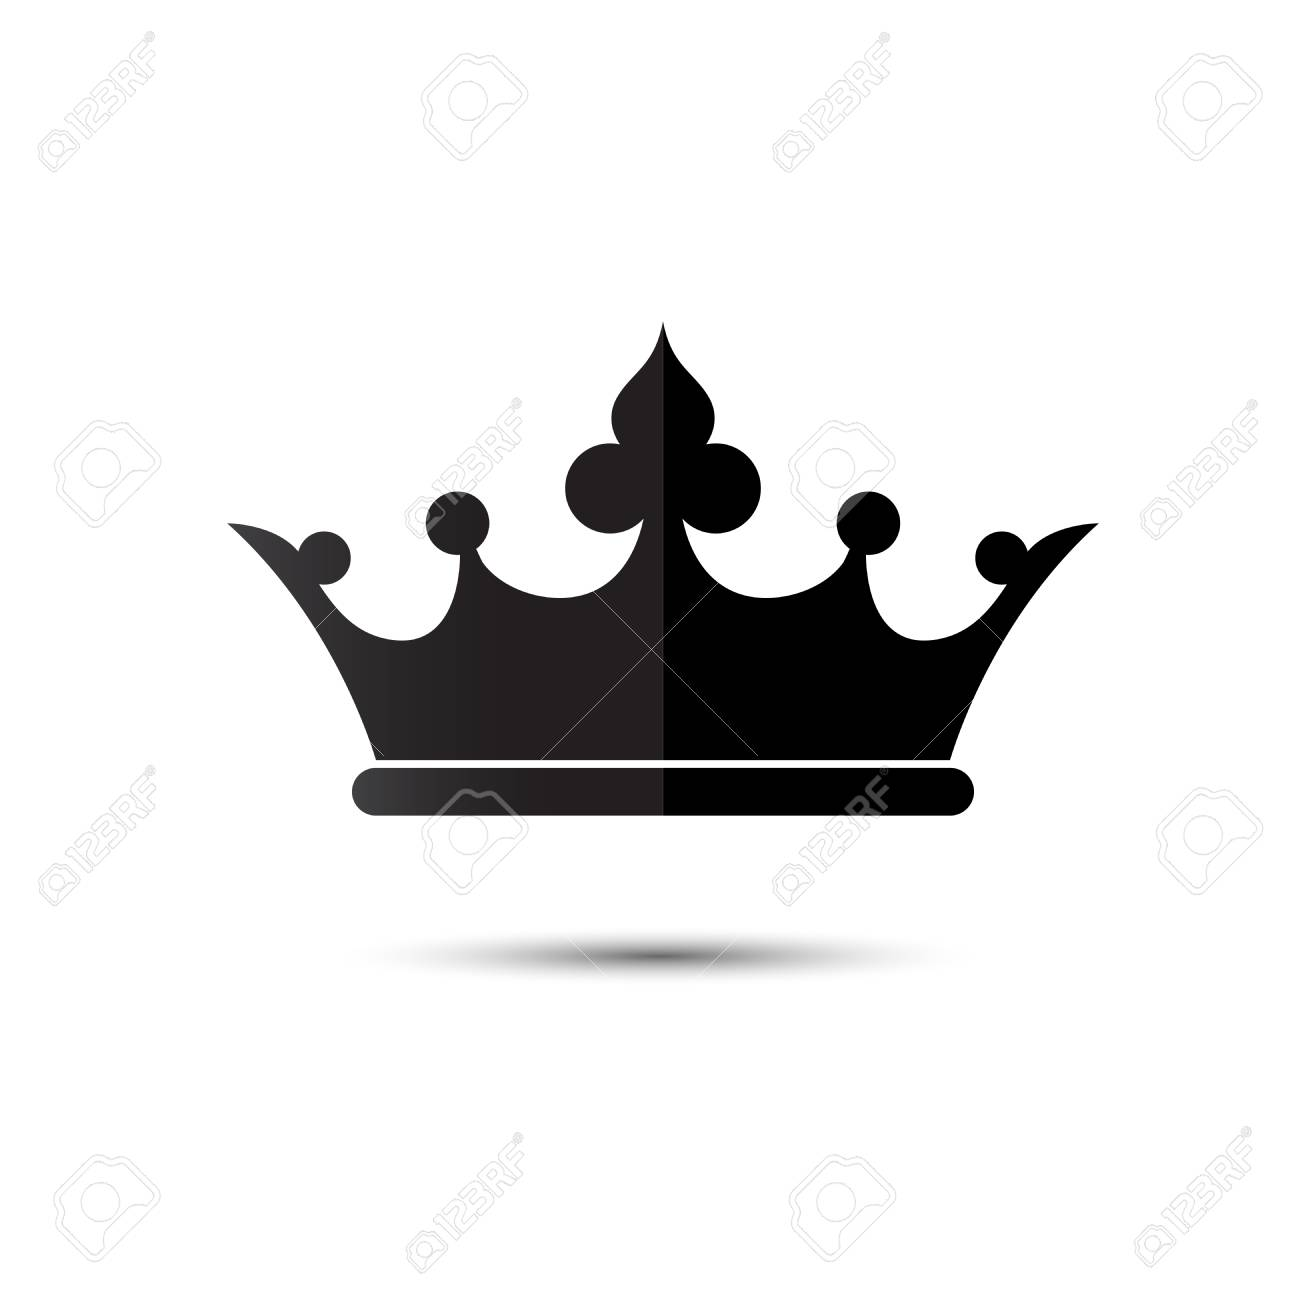 Crown Symbol With Black Color Isolate On White Background Vector